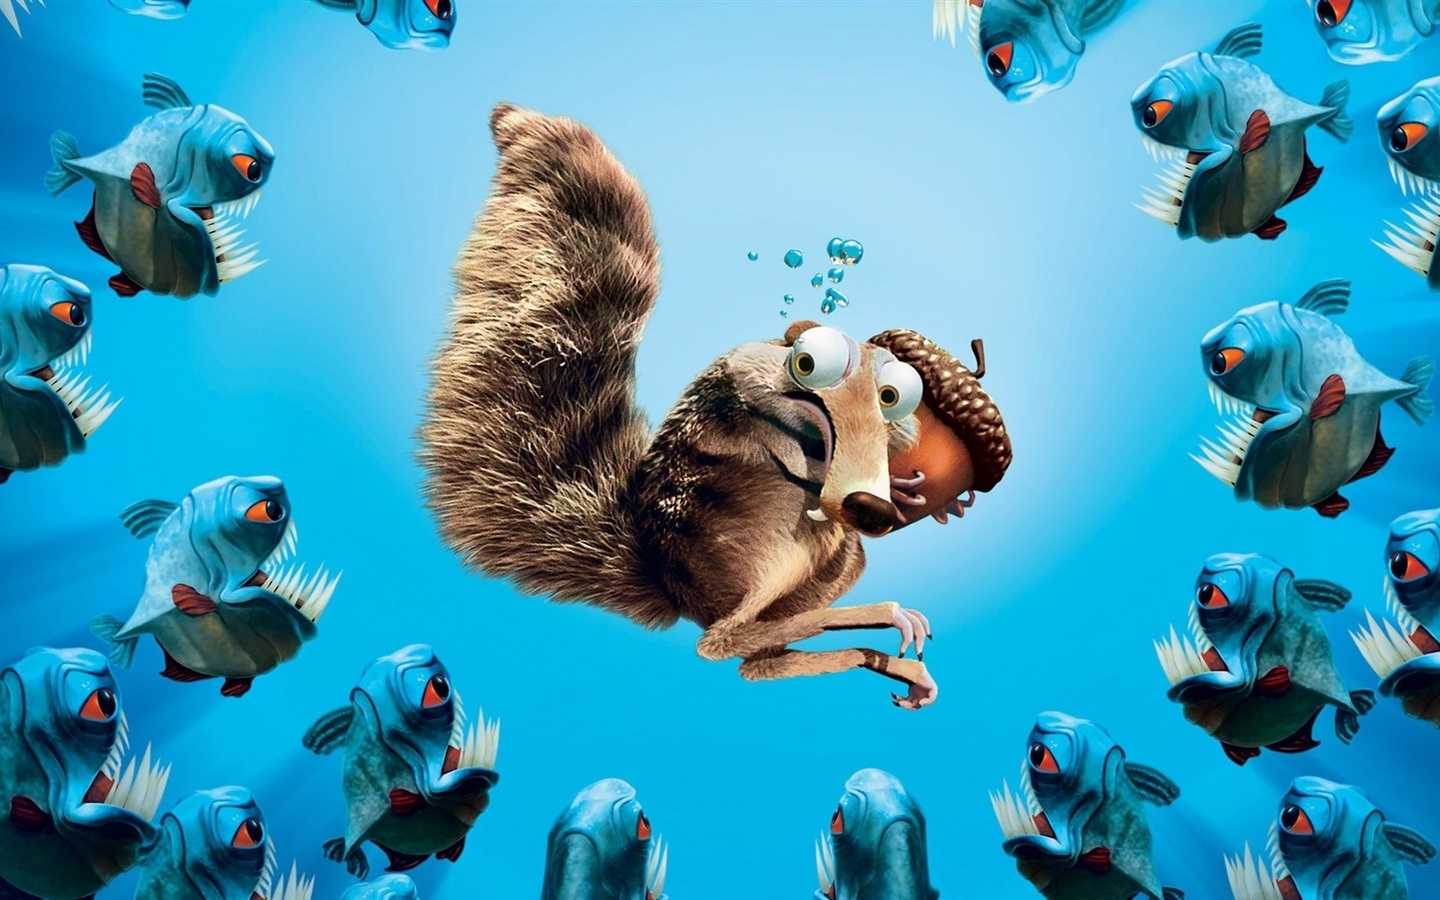 Ice Age squirrel acorn piranhas wallpaper - 1440x900